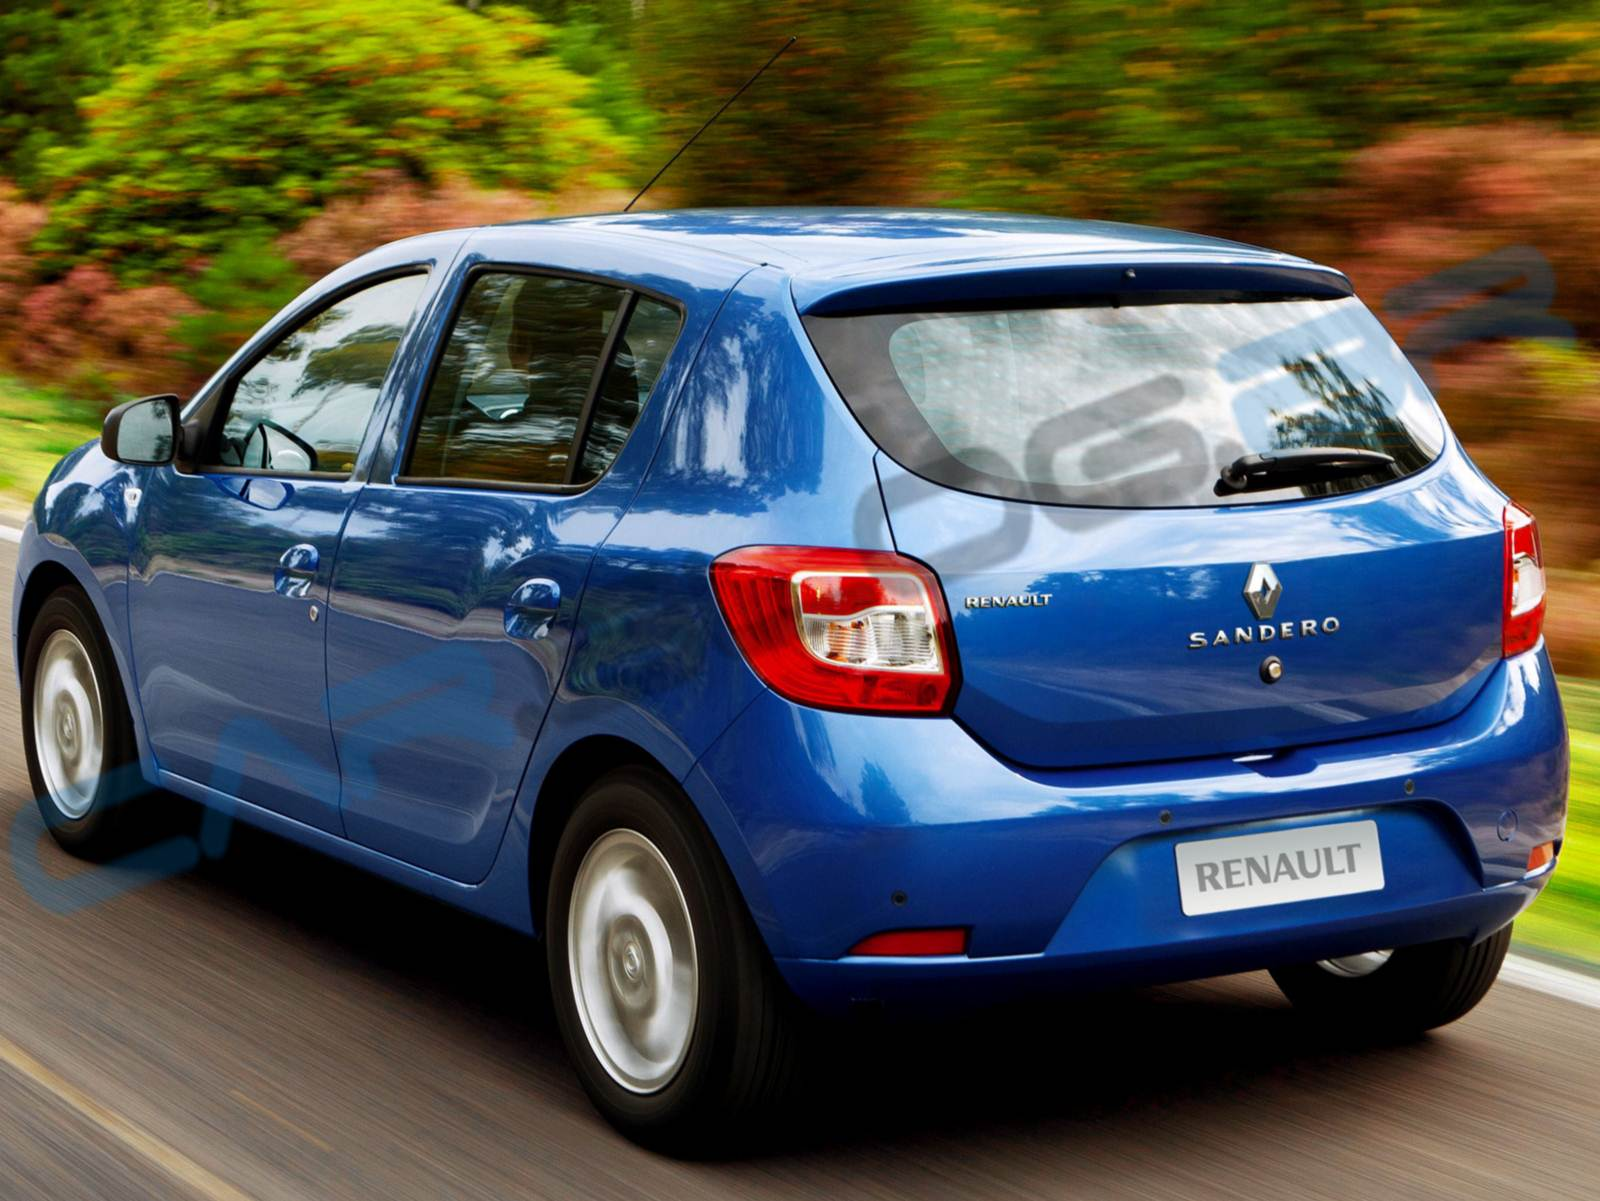 Review: Renault Sandero Dynamique - Road Tests - Gearheads